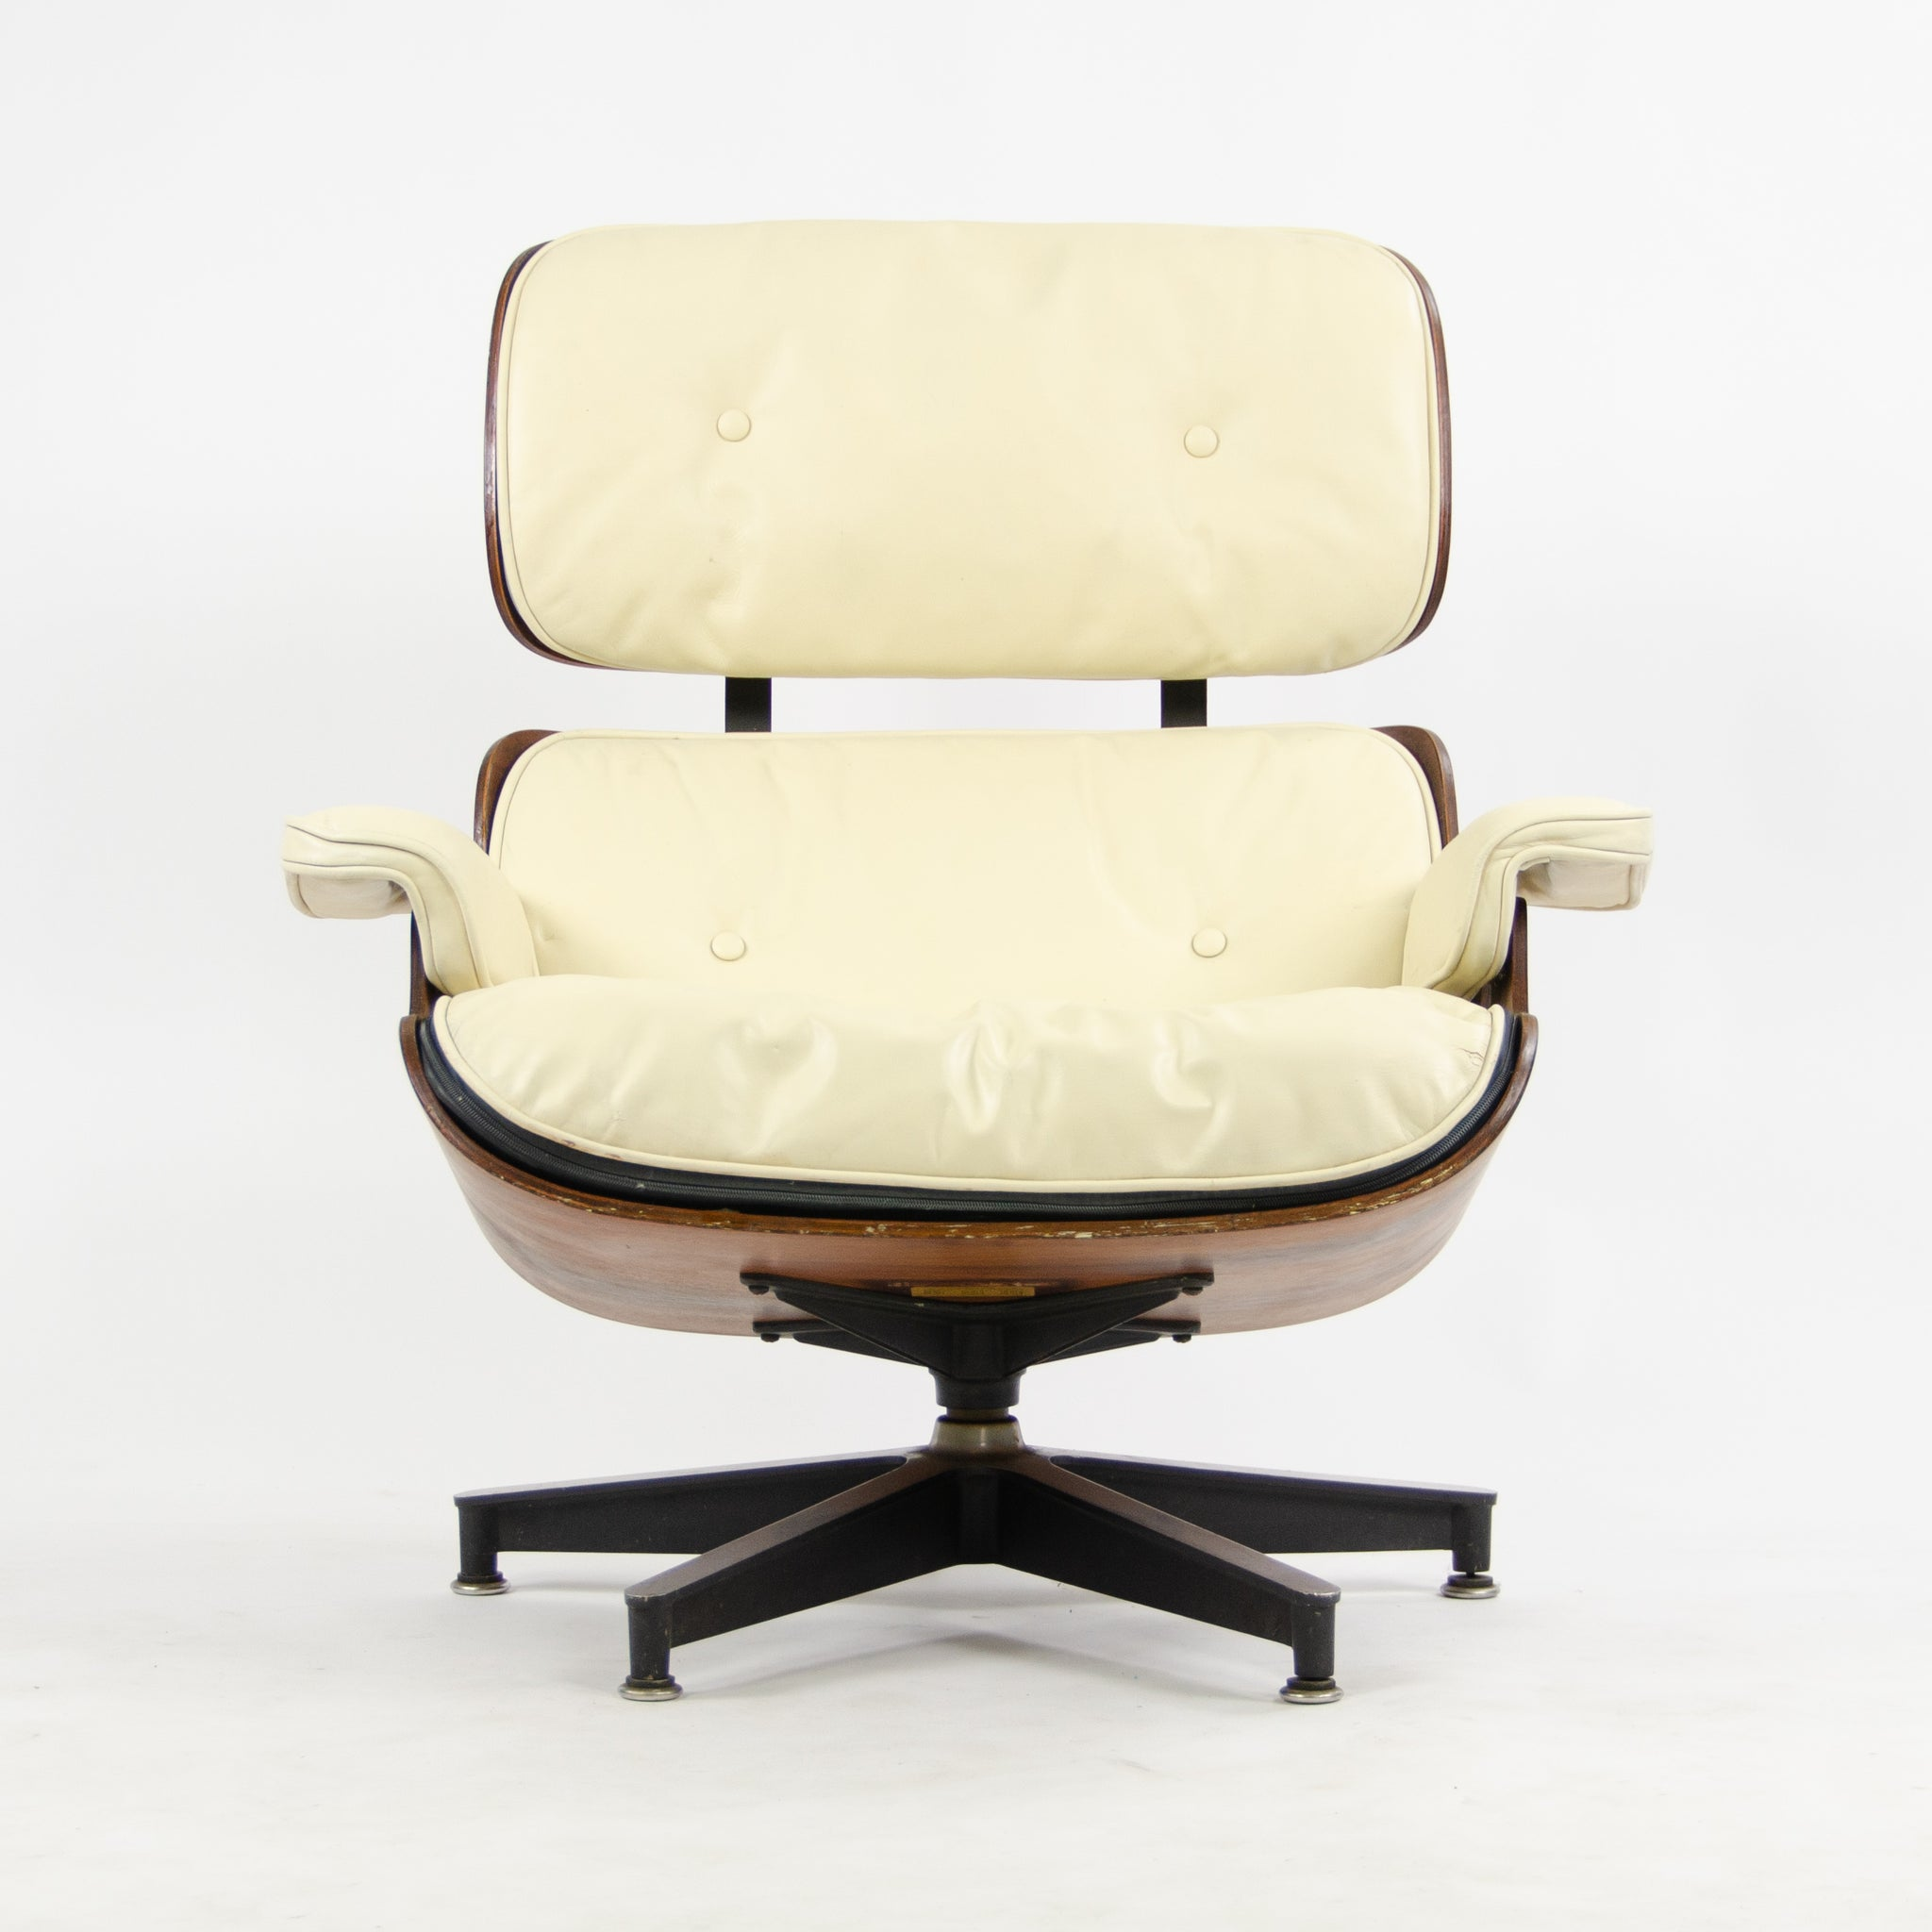 Awesome Sold 1956 Herman Miller Eames Lounge Chair Ottoman 670 671 Caraccident5 Cool Chair Designs And Ideas Caraccident5Info